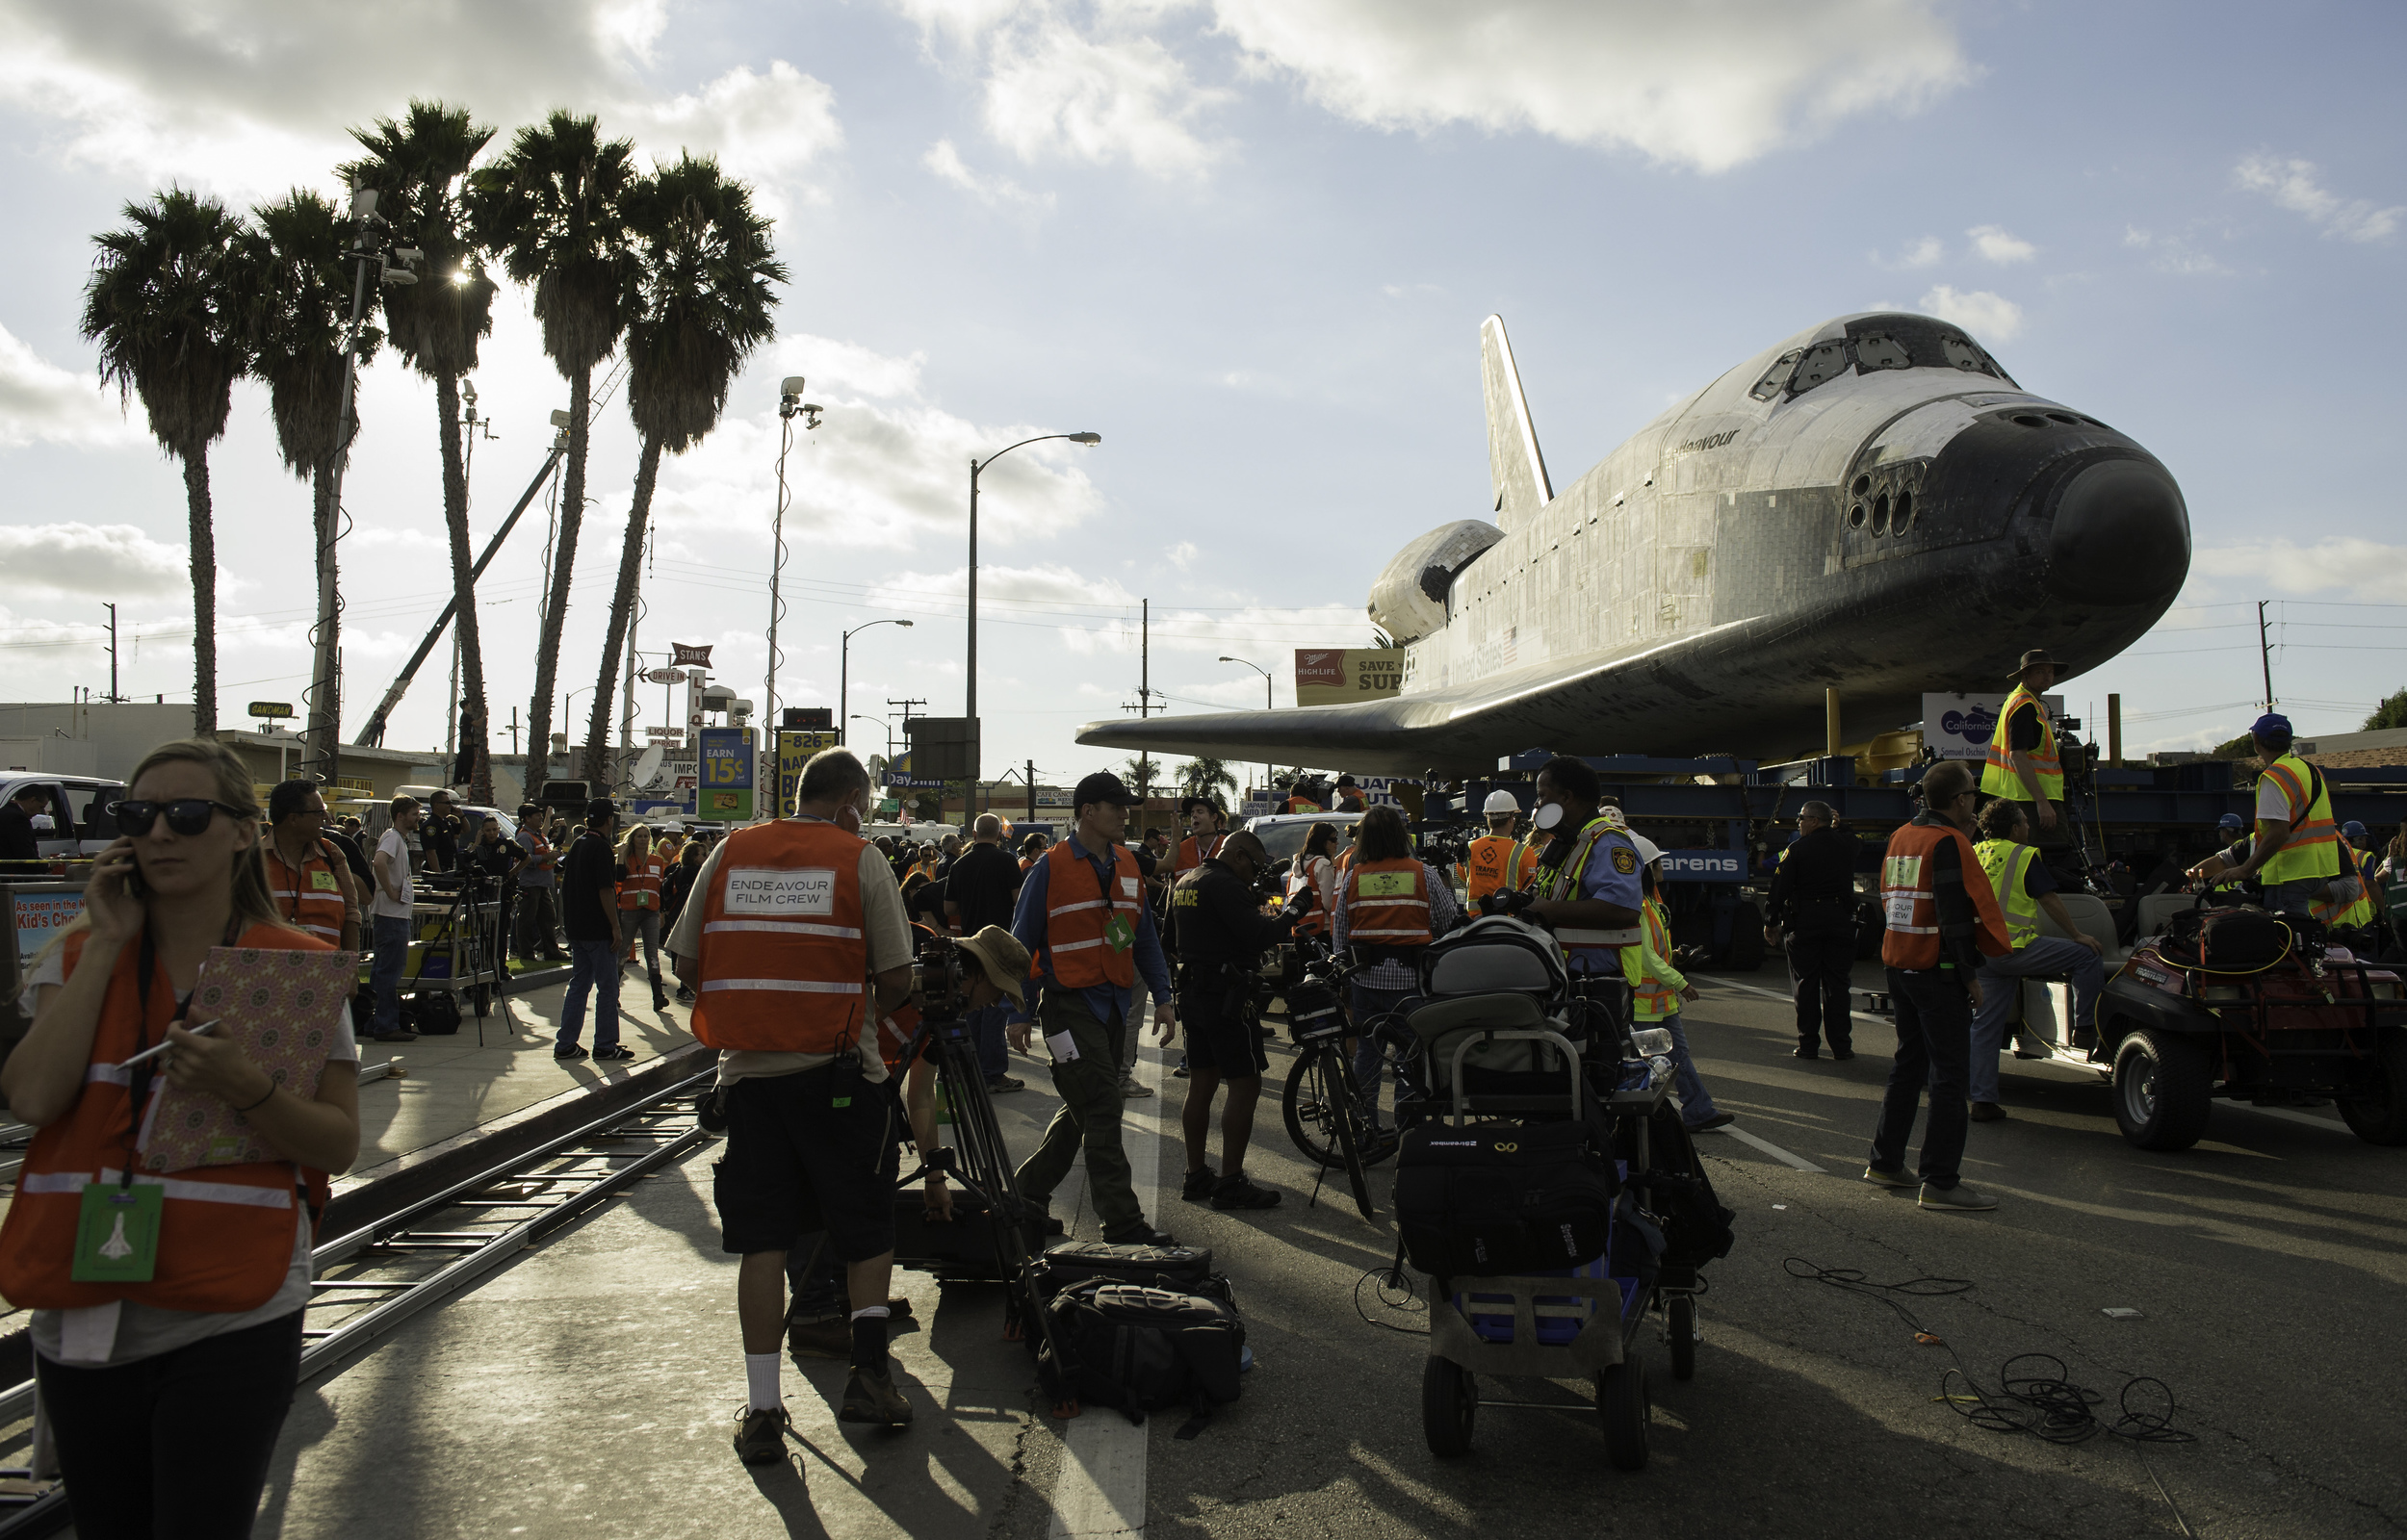 Support personnel and film crews are seen working around the space shuttle Endeavour as it traverses through Inglewood, Calif. on Friday, Oct. 12, 2012. Endeavour, built as a replacement for space shuttle Challenger, completed 25 missions, spent 299 days in orbit, and orbited Earth 4,671 times while traveling 122,883,151 miles. Beginning Oct. 30, the shuttle will be on display in the CSC's Samuel Oschin Space Shuttle Endeavour Display Pavilion, embarking on its new mission to commemorate past achievements in space and educate and inspire future generations of explorers. (NASA/Carla Cioffi)